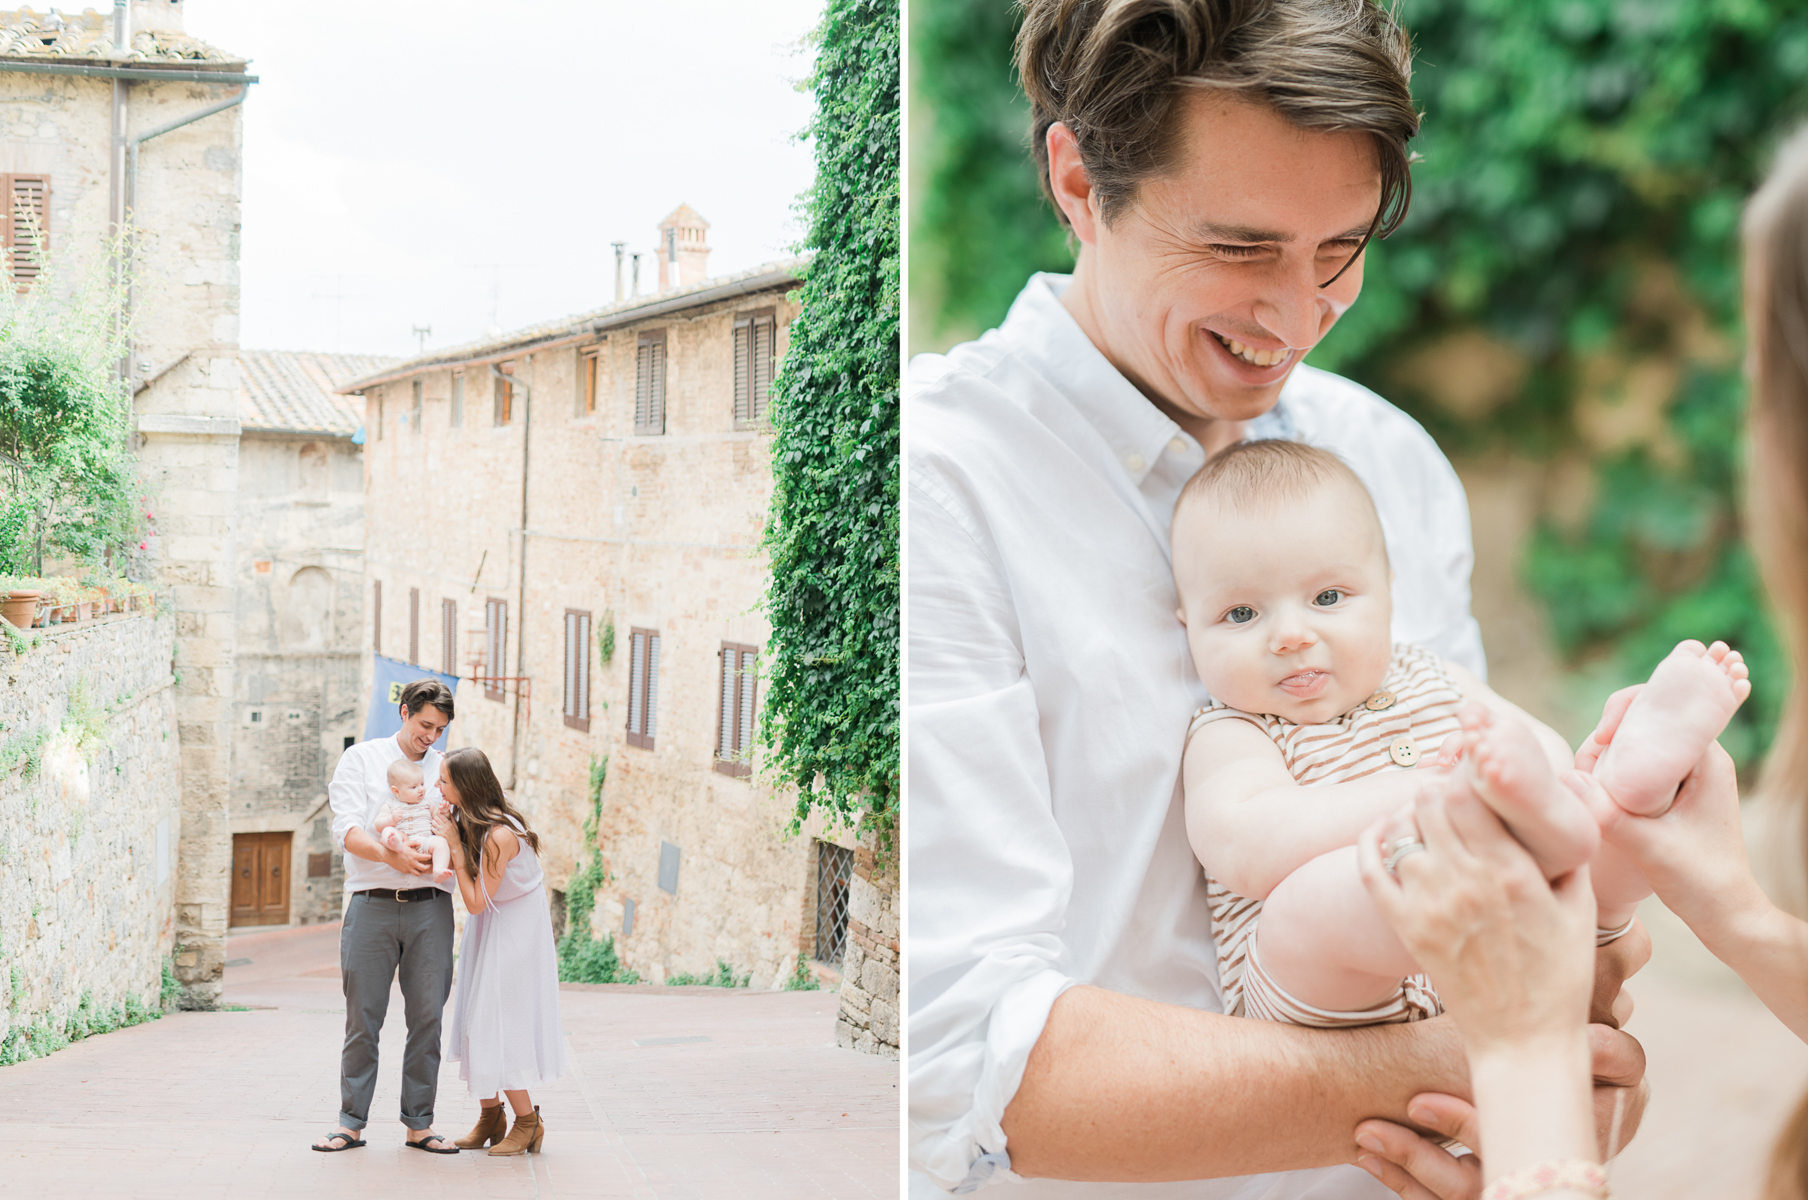 AKP_San_Gimignano_Tuscany_family_shoot_wedding_engagement_photographer-16.jpg